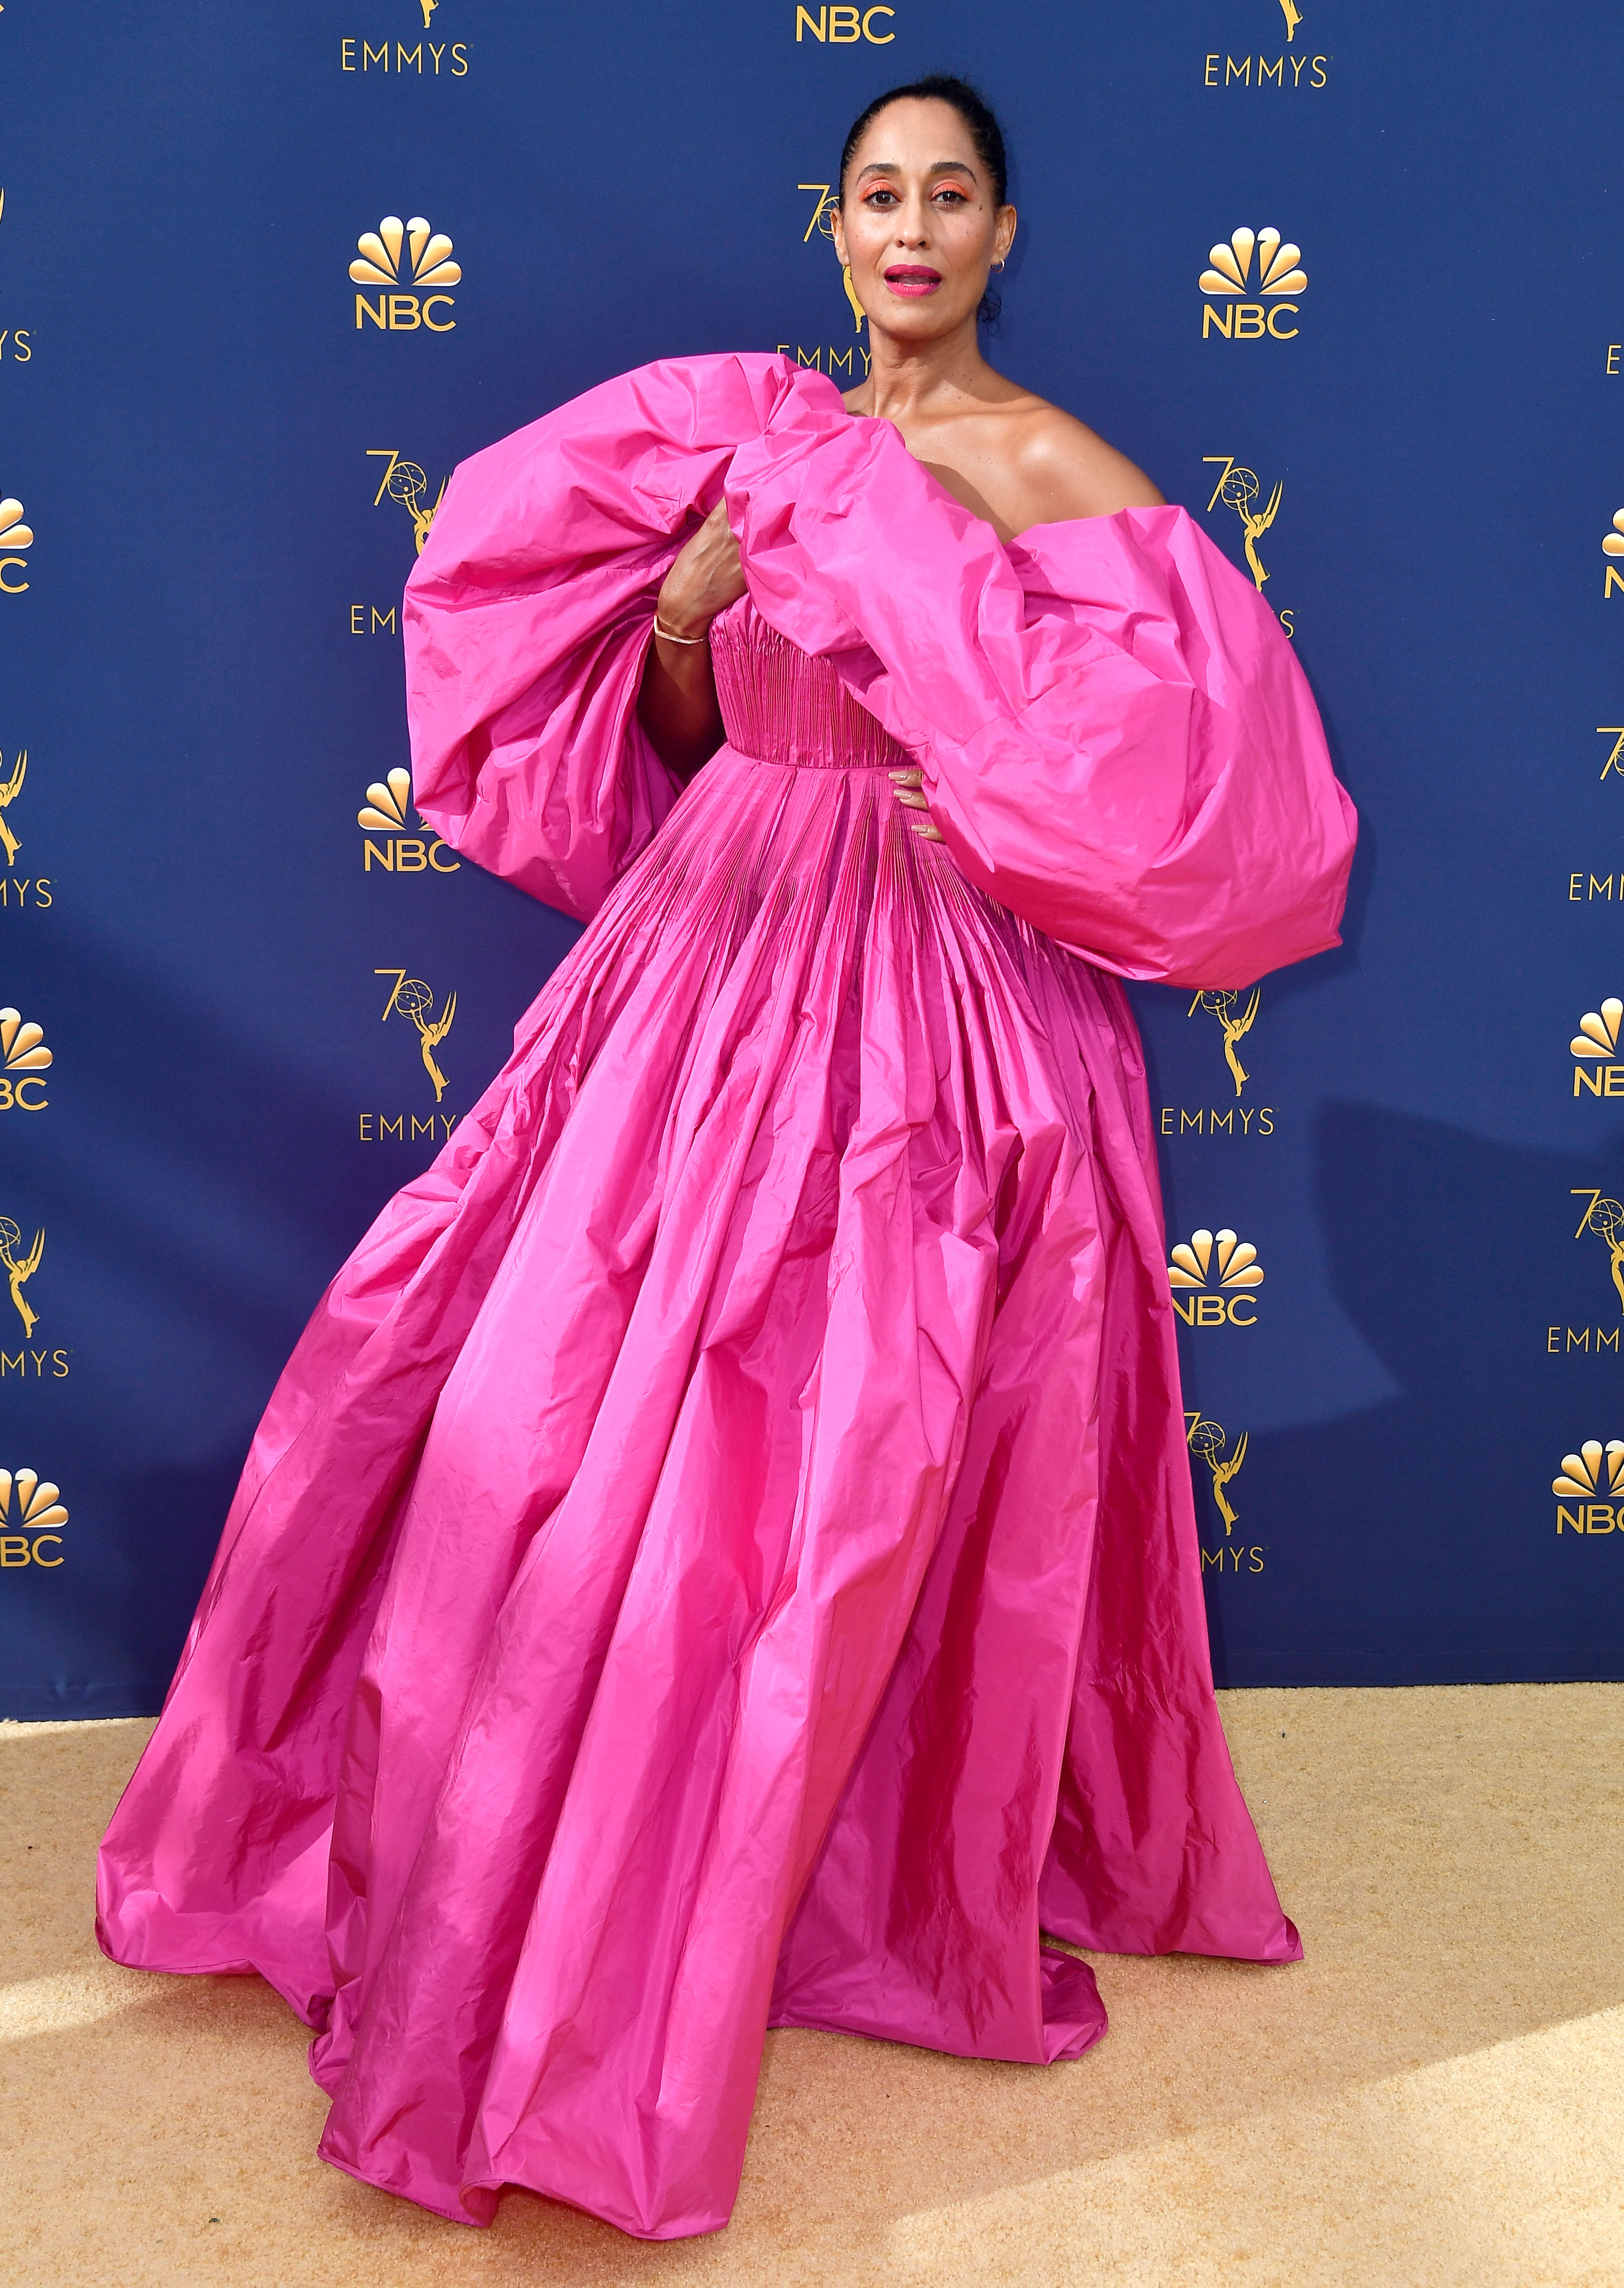 tracee-ellis-ross - The best part of the actress' over-the-top Emmys look? She matched makeup to her voluminous hot pink couture Valentino gown.